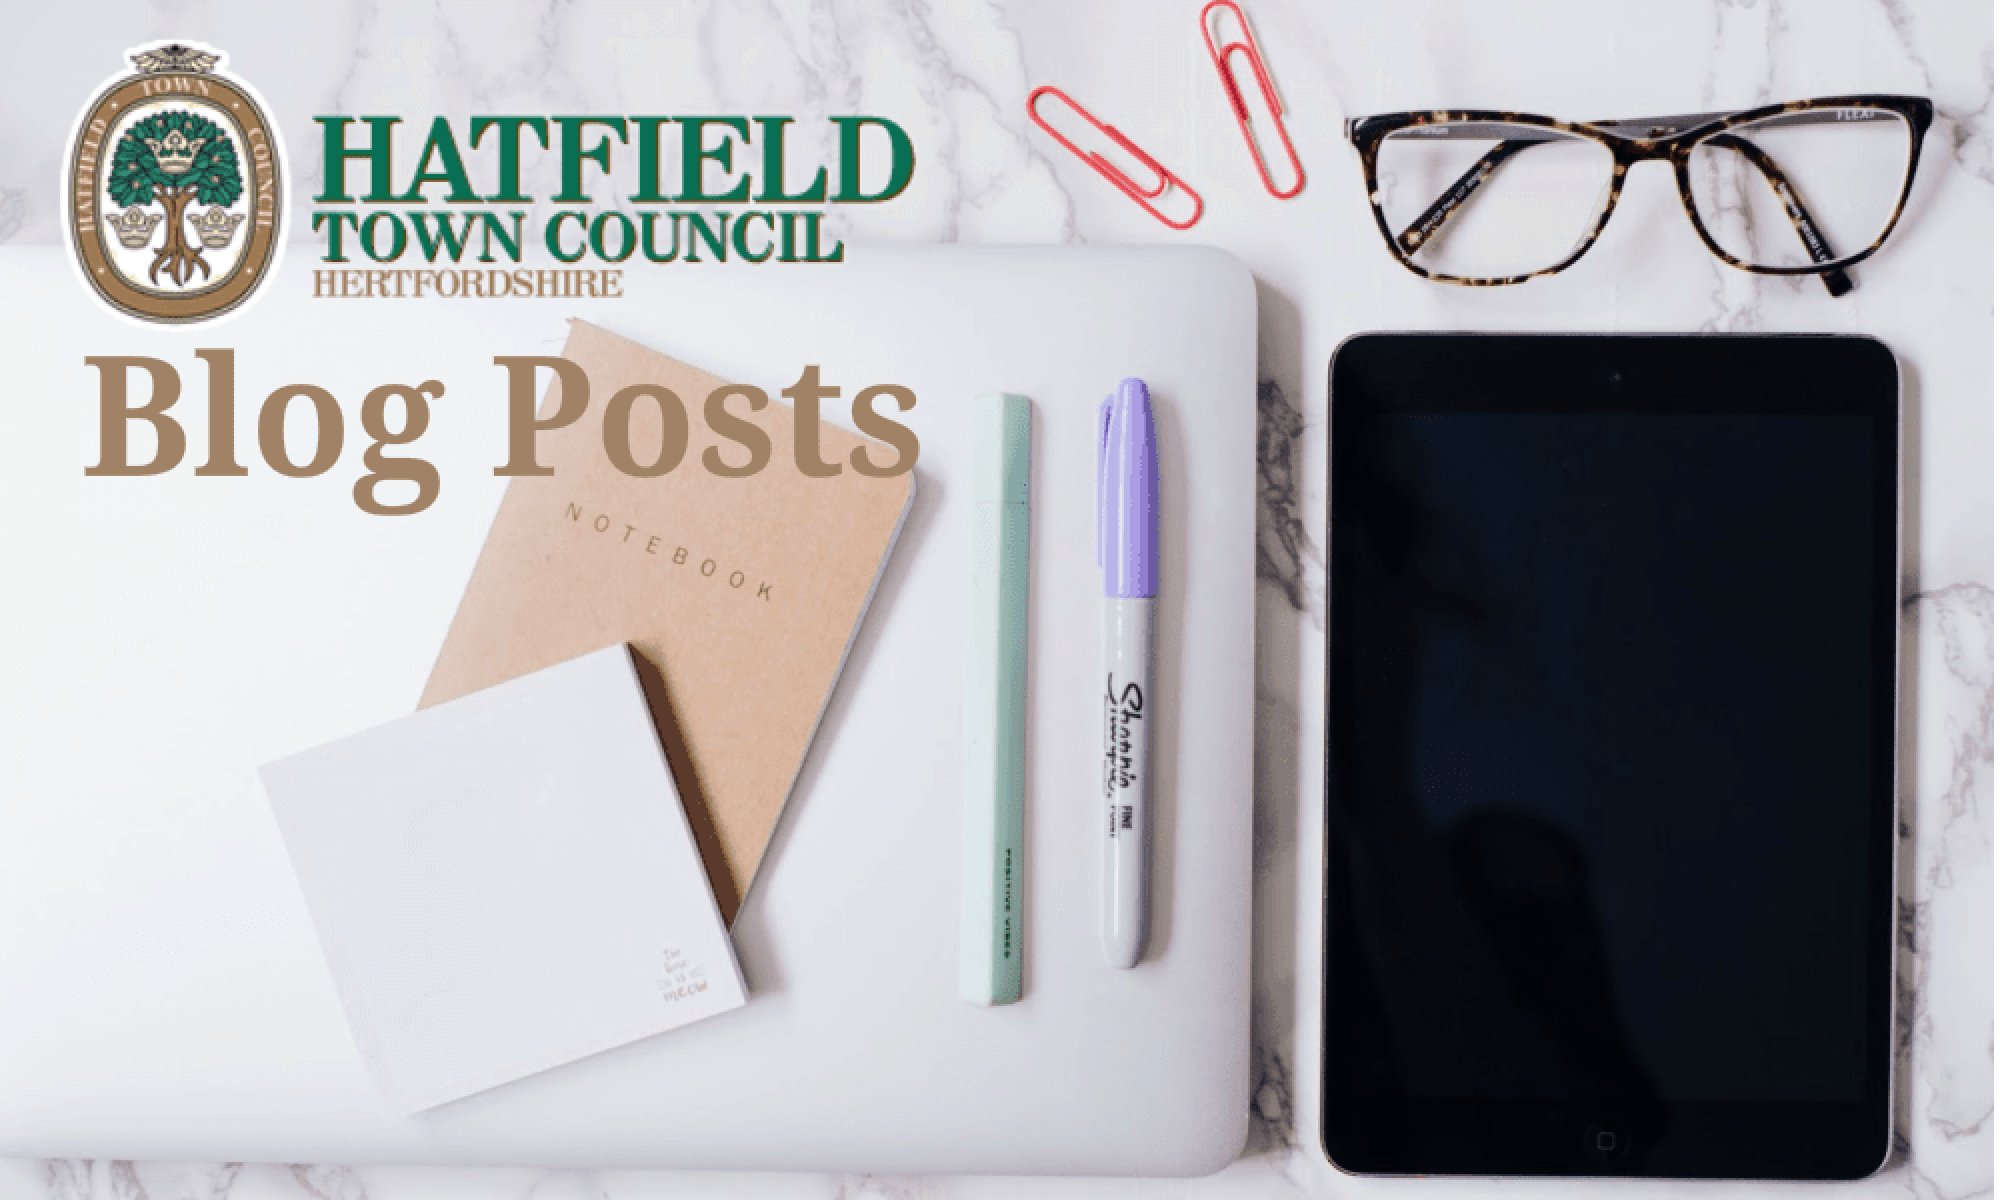 Hatfield Town Council